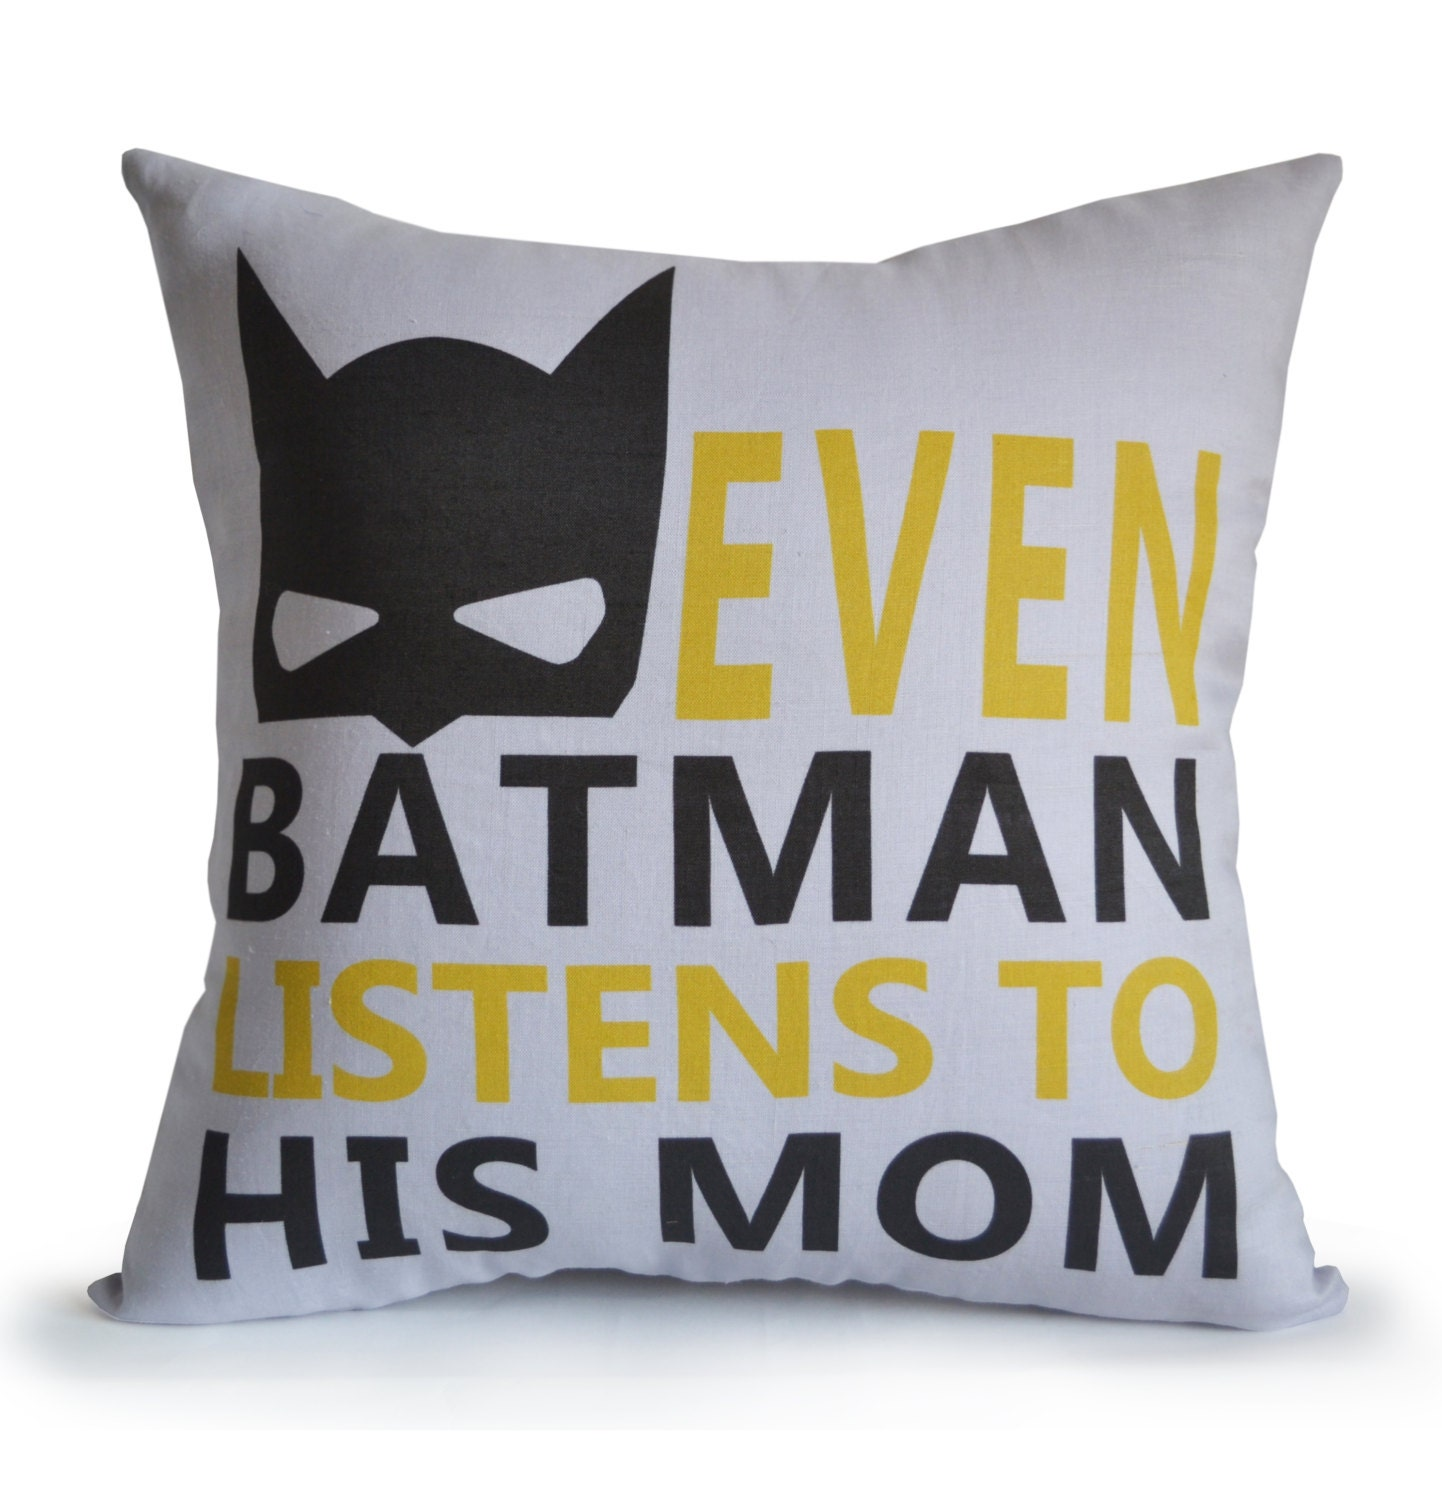 Nursery Ideas And Décor To Inspire You: Nursery Decor Boy Room Pillow Cover Kids Room Decor Batman